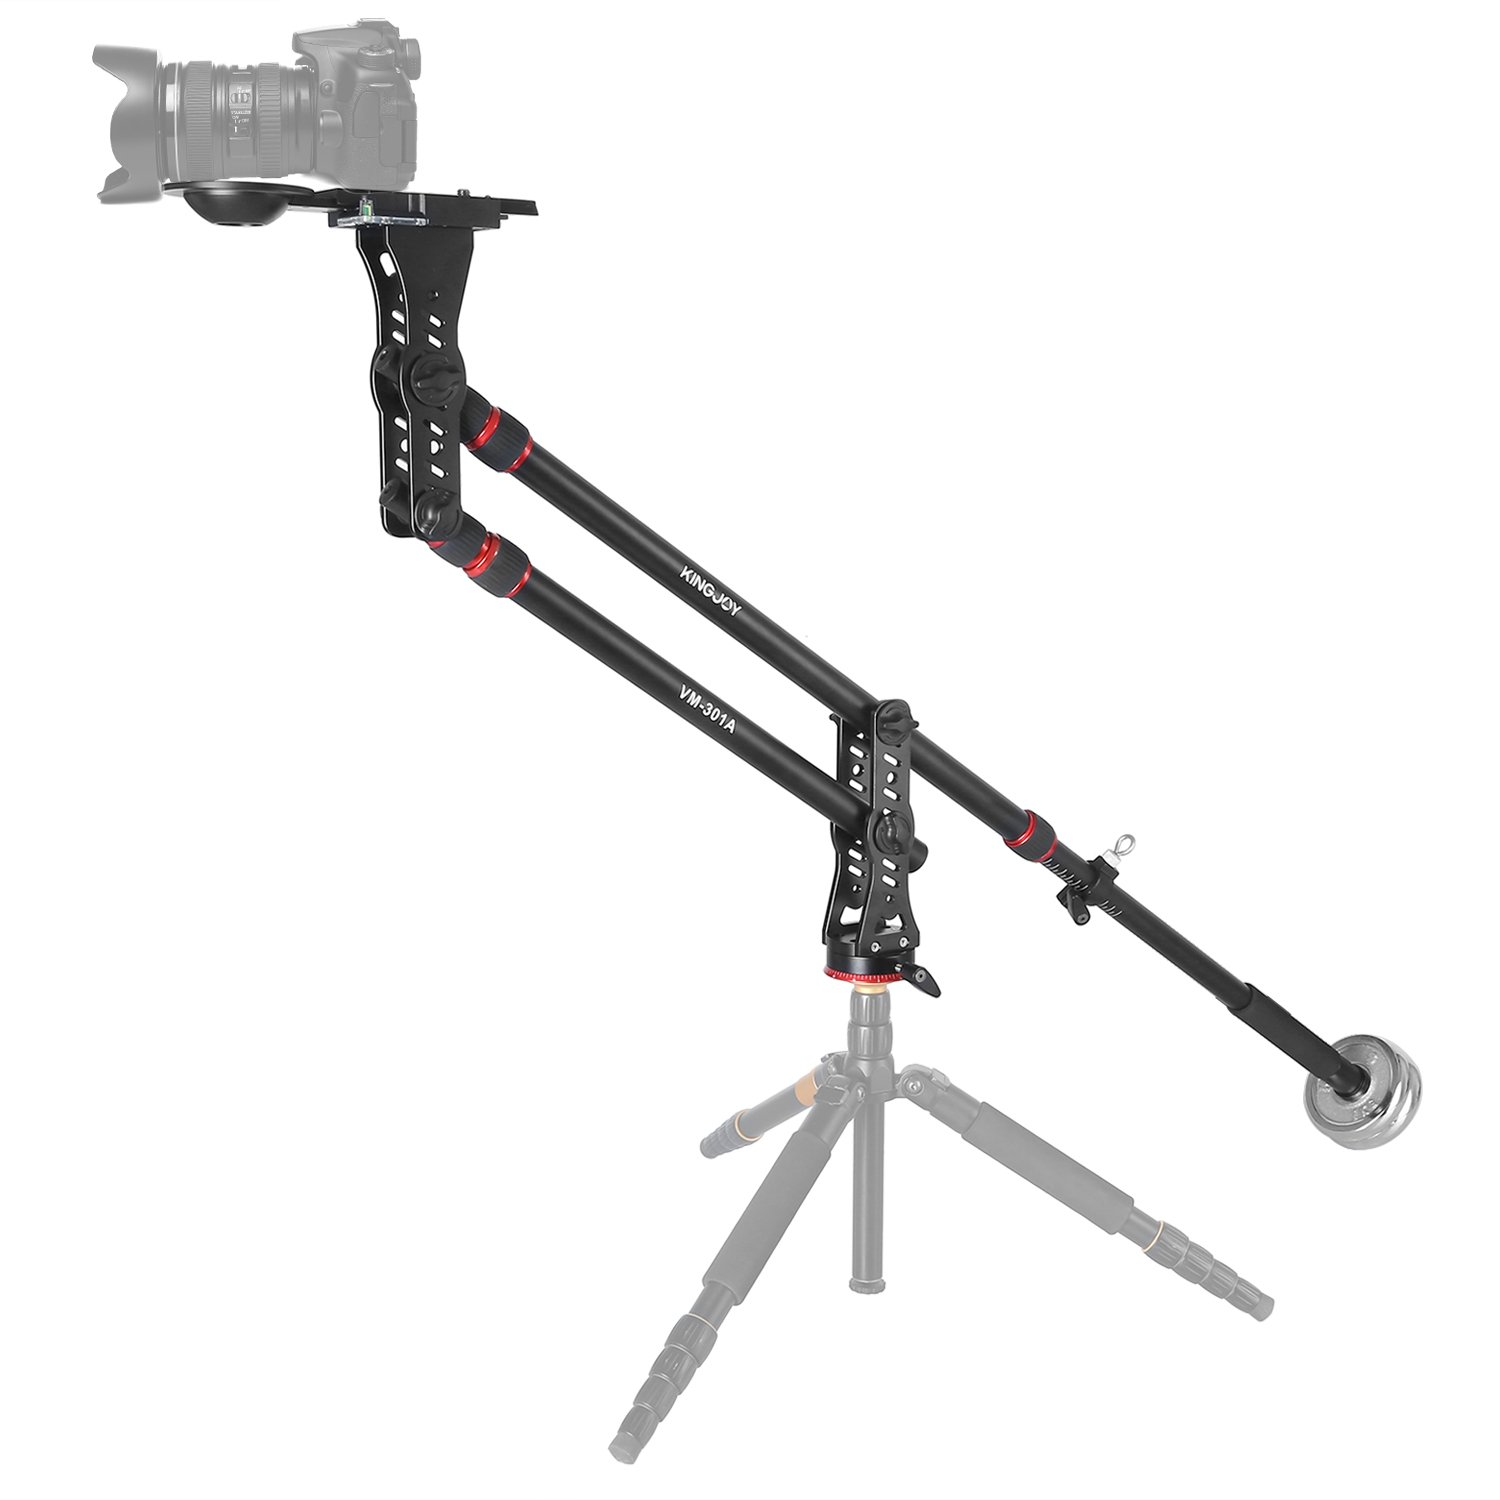 Papaler VM-301A 82.7''/210cm Aluminum Camera Mini Jib Crane with Counterweight,360 Degree Pan Ball Head,Bowl for 75~100mm Tripod Head and Quick Release Plate Adapter, Max.load to 8 kg/17.6 pounds by Papaler